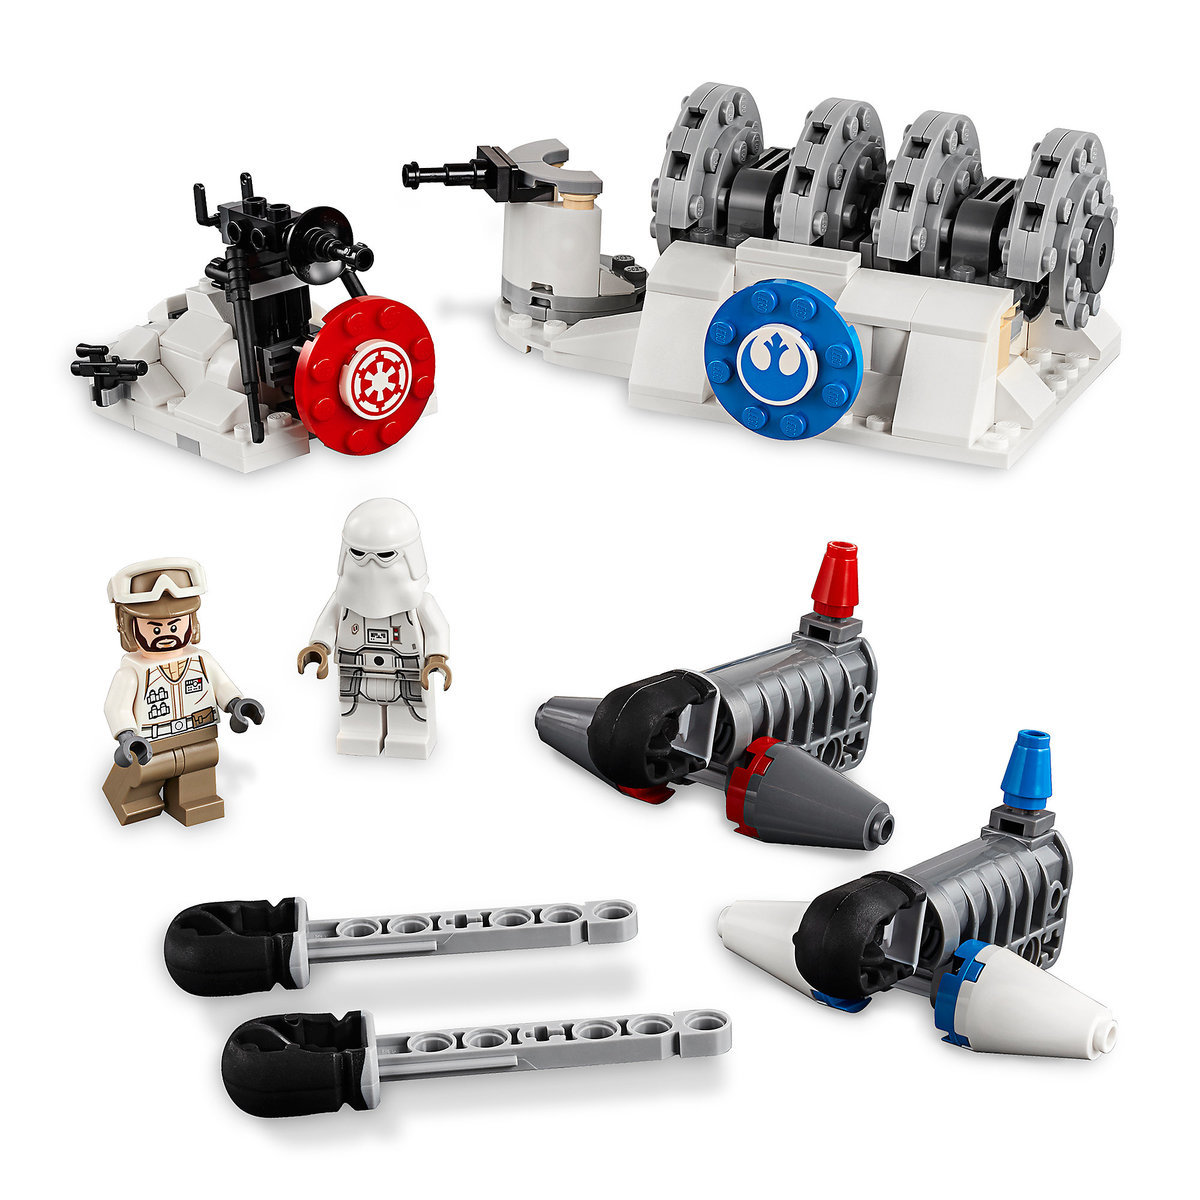 Product image of action battle hoth generator attack play set by lego star wars